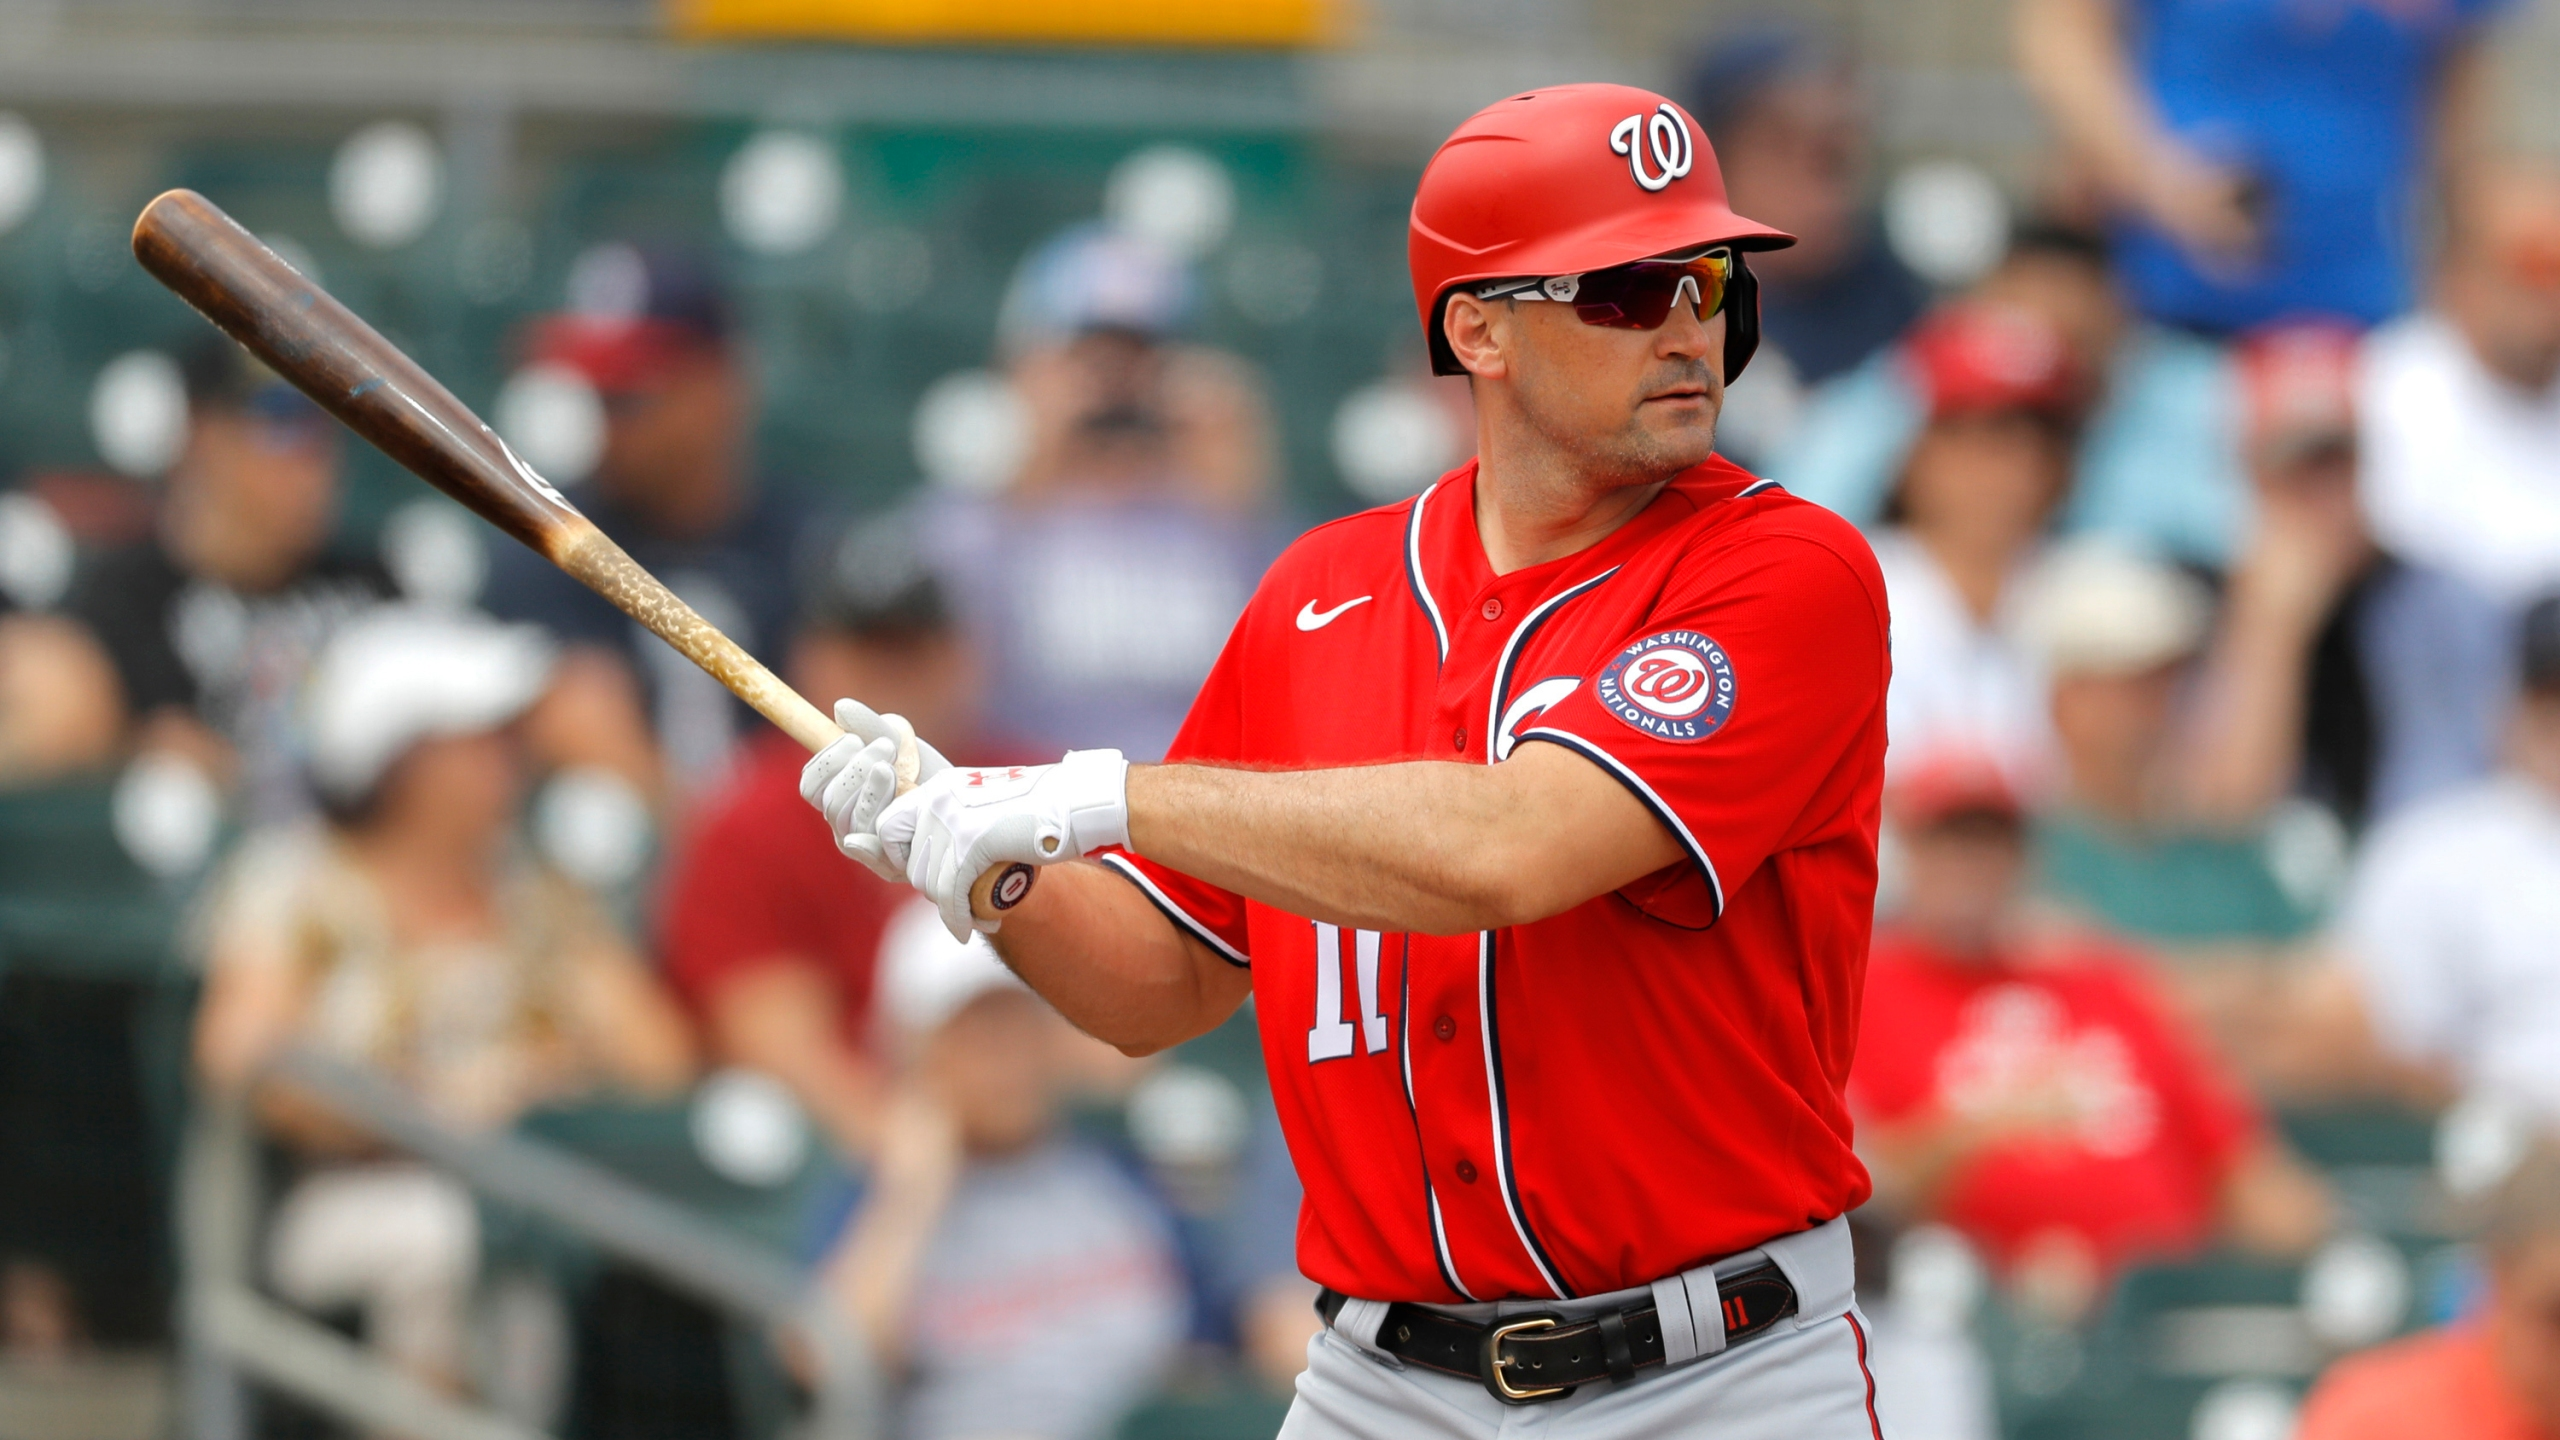 Washington Nationals' Ryan Zimmerman